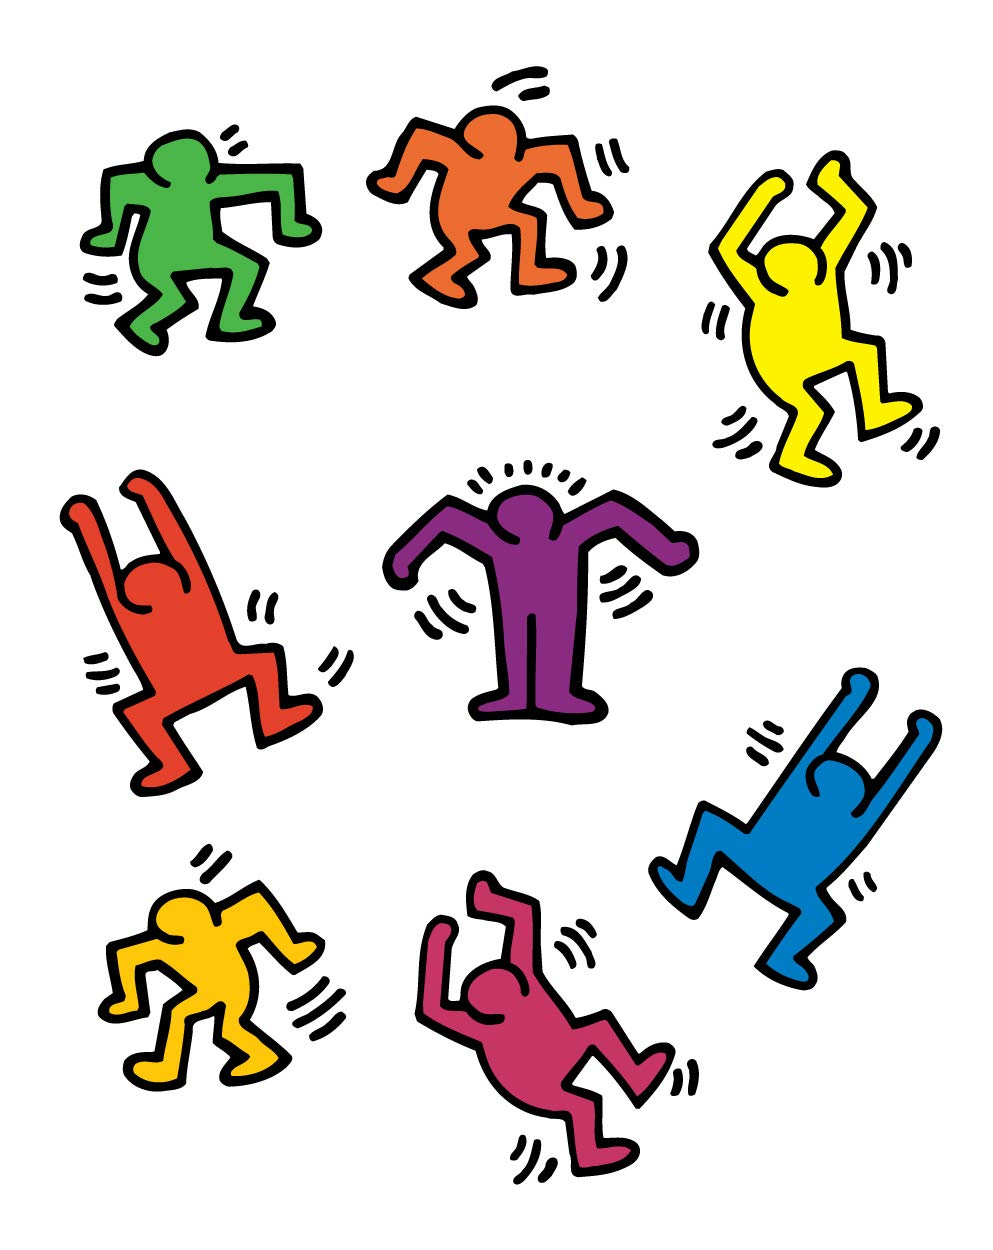 BLIK Keith Haring Dancers Removable Wall Decals.